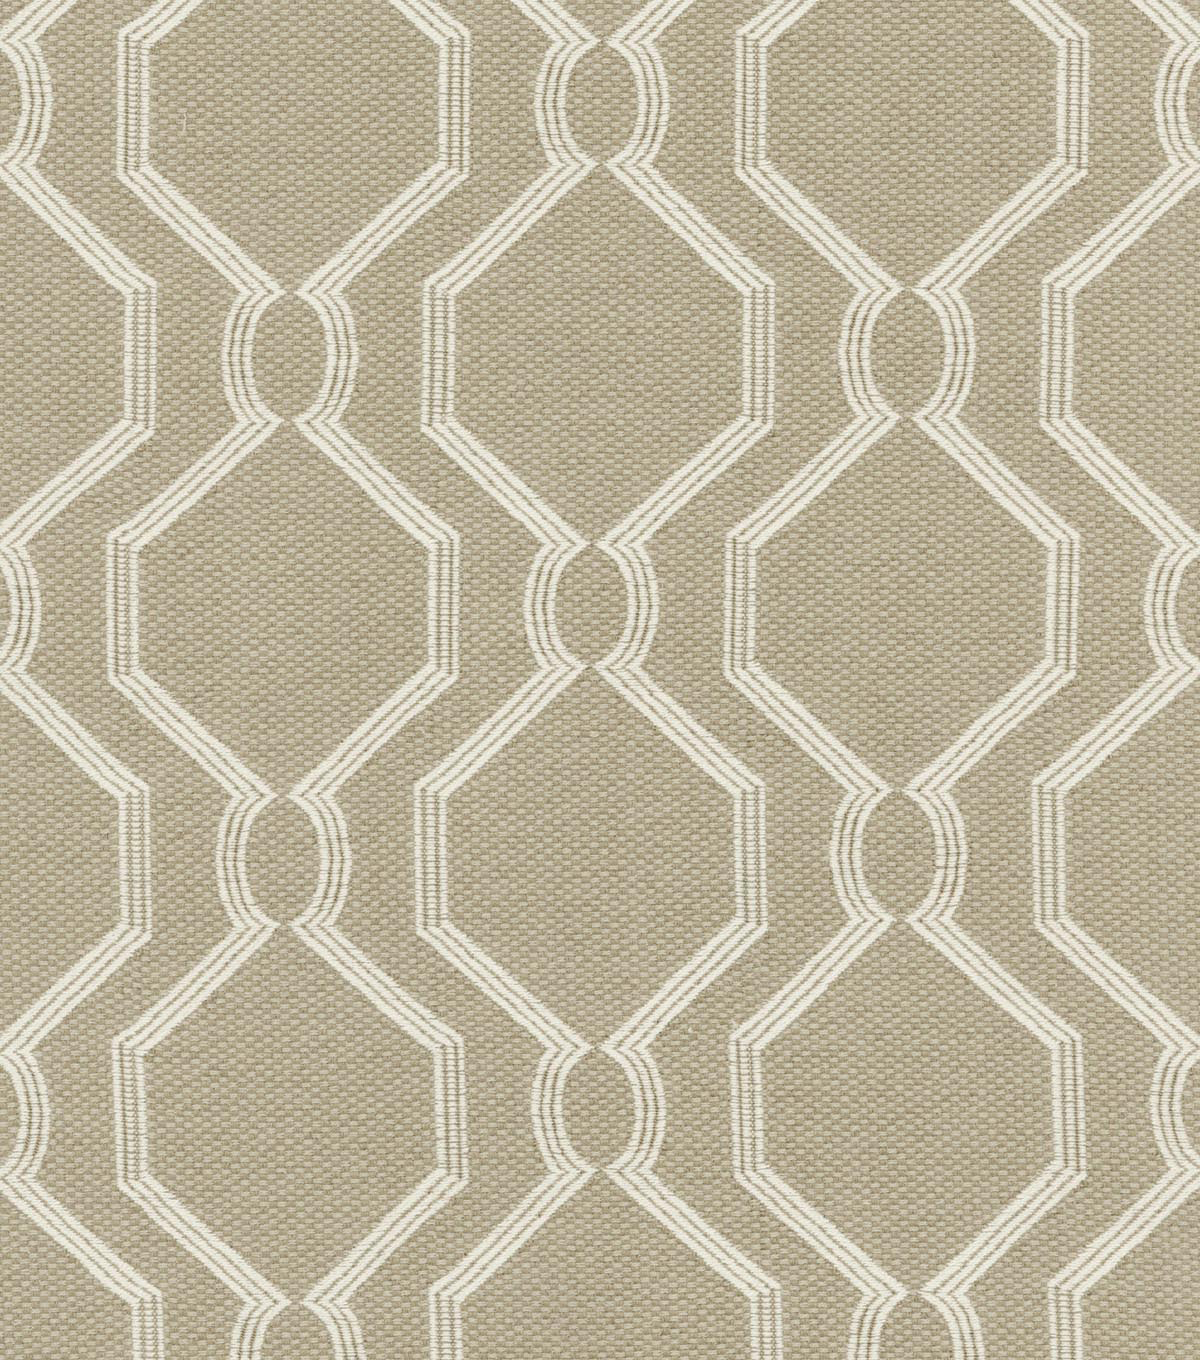 Home Decor 8\u0022x8\u0022 Swatch Fabric-PK Lifestyles Laneway Linen